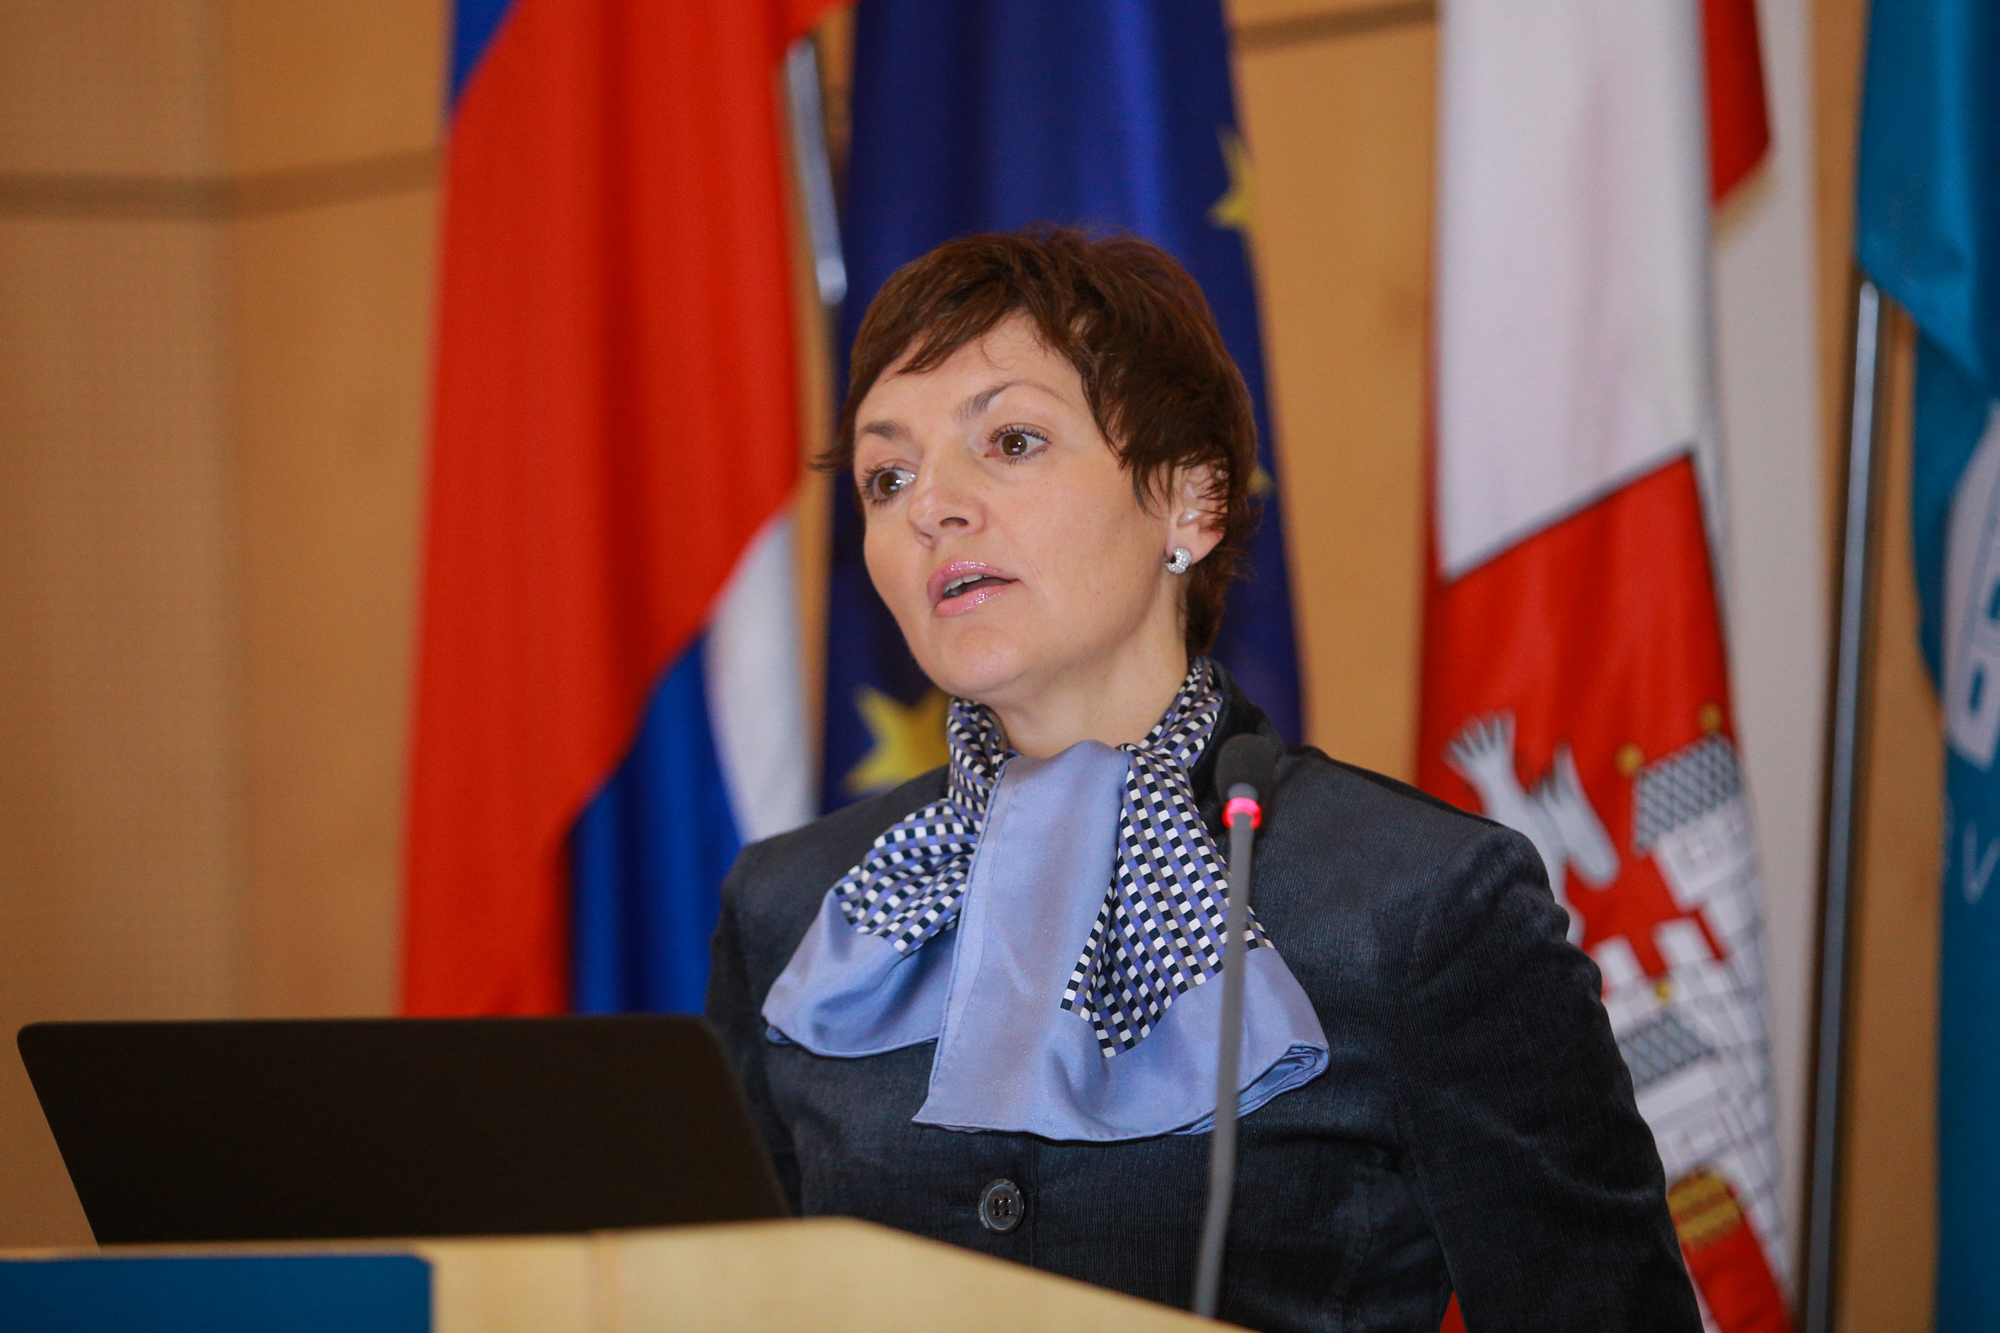 DRC_Maribor_2015_Minister Education Slovenia